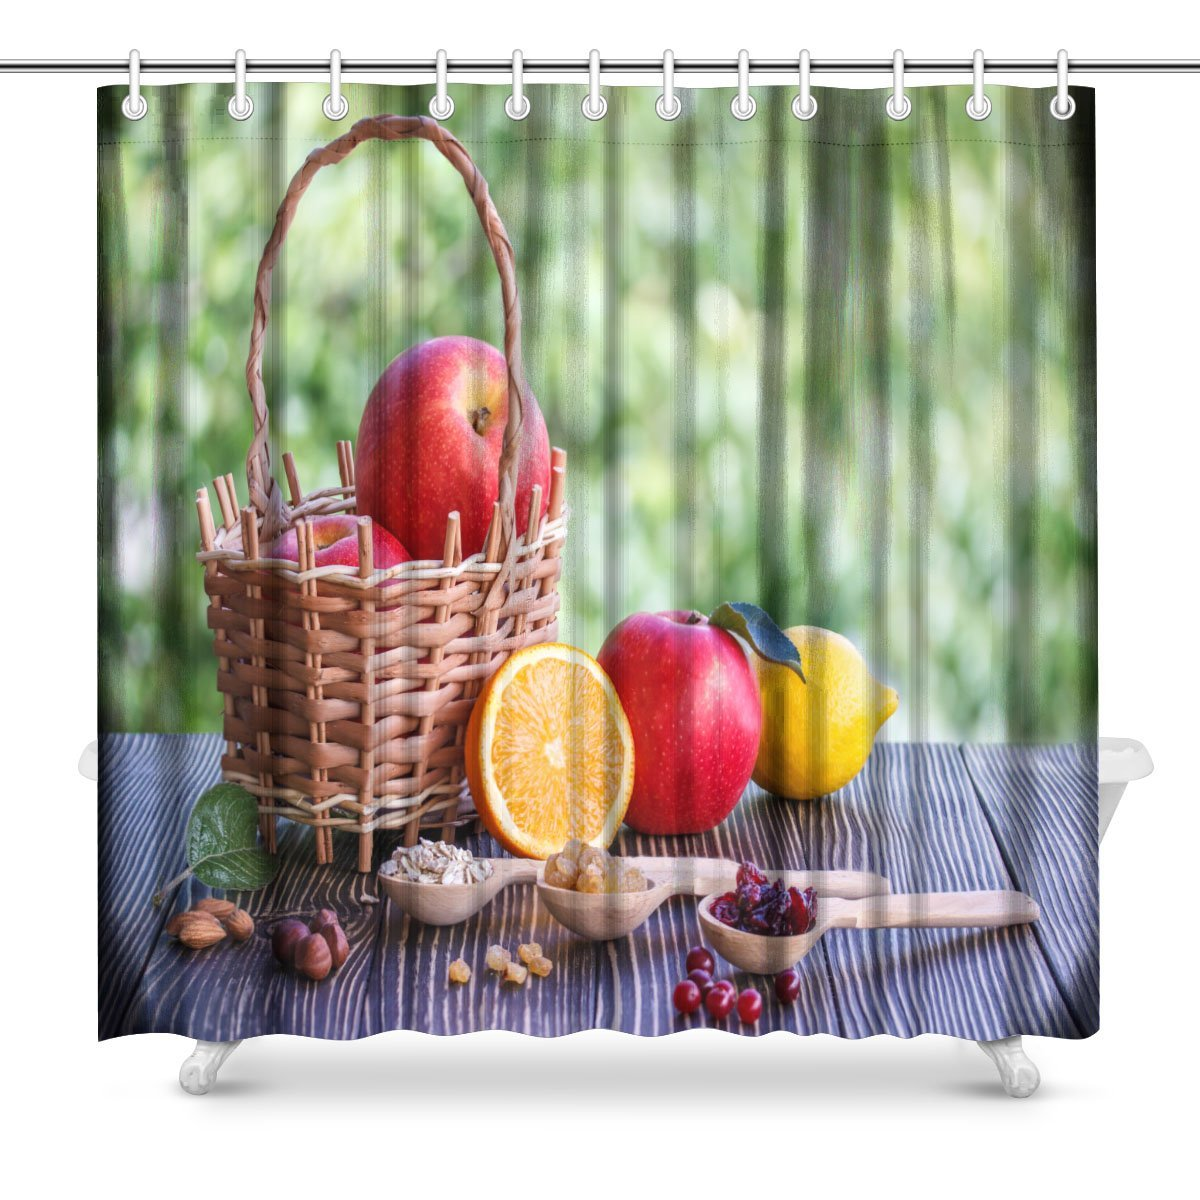 Apples Orange Nuts Cranberry Lemon Muesli And Raisins Polyester Fabric Bathroom Shower Curtain Set With Hooks In Curtains From Home Garden On